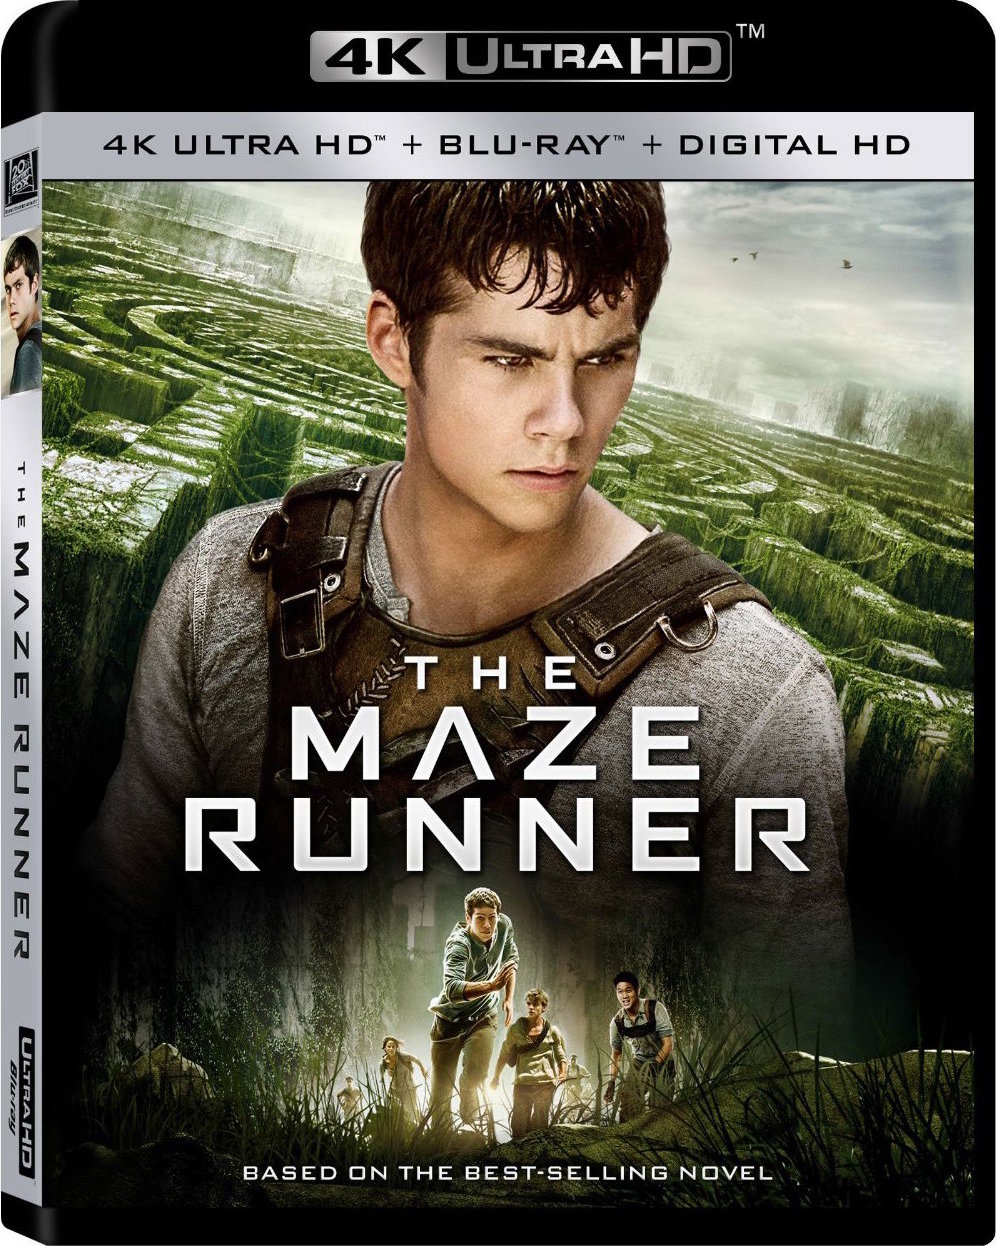 The Maze Runner (2014) 4K Ultra HD Blu-ray